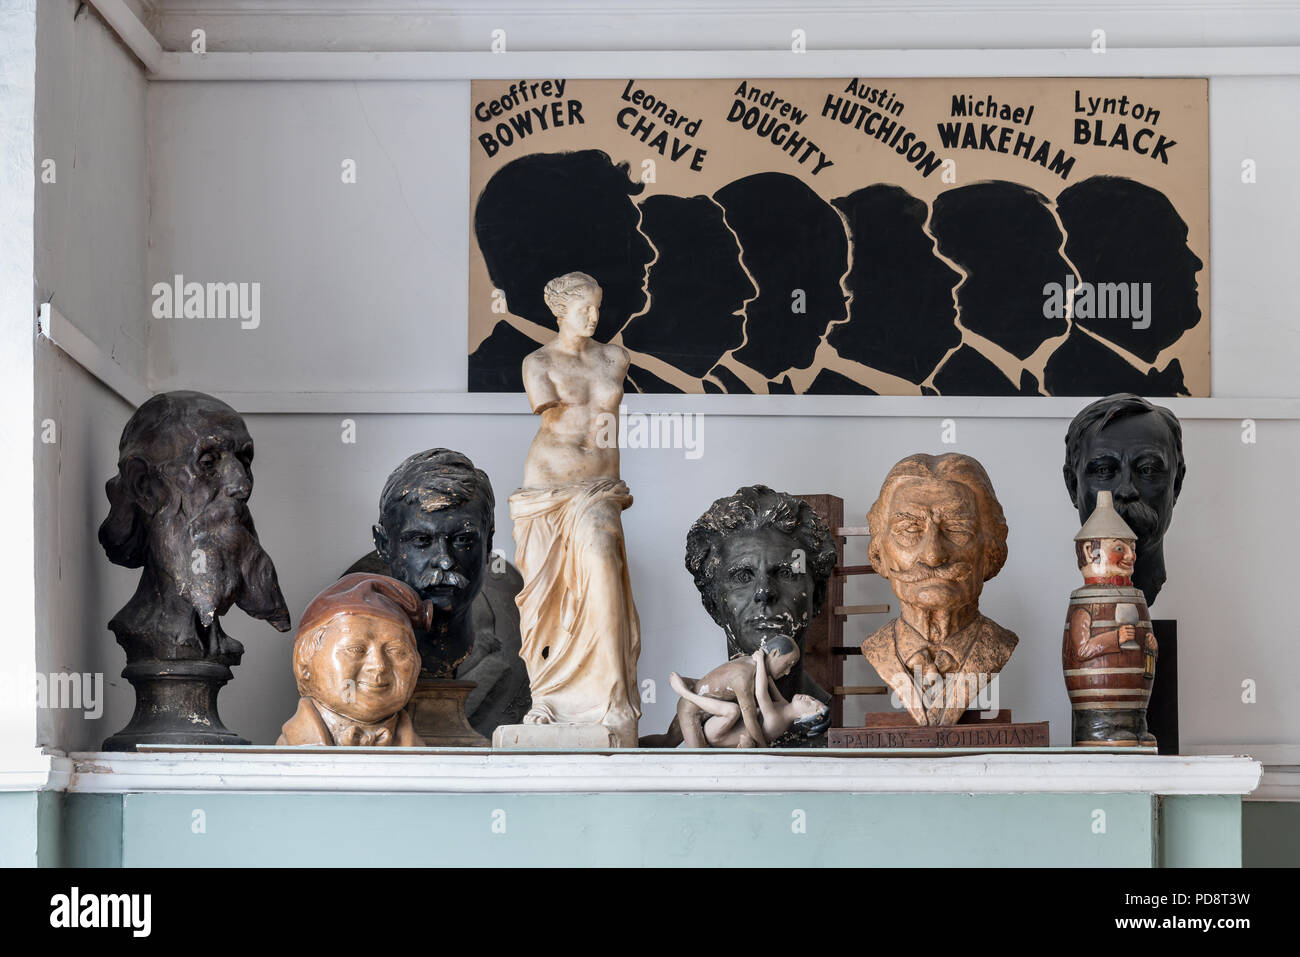 Plaster busts of eminent past Sketch Club members - Stock Image